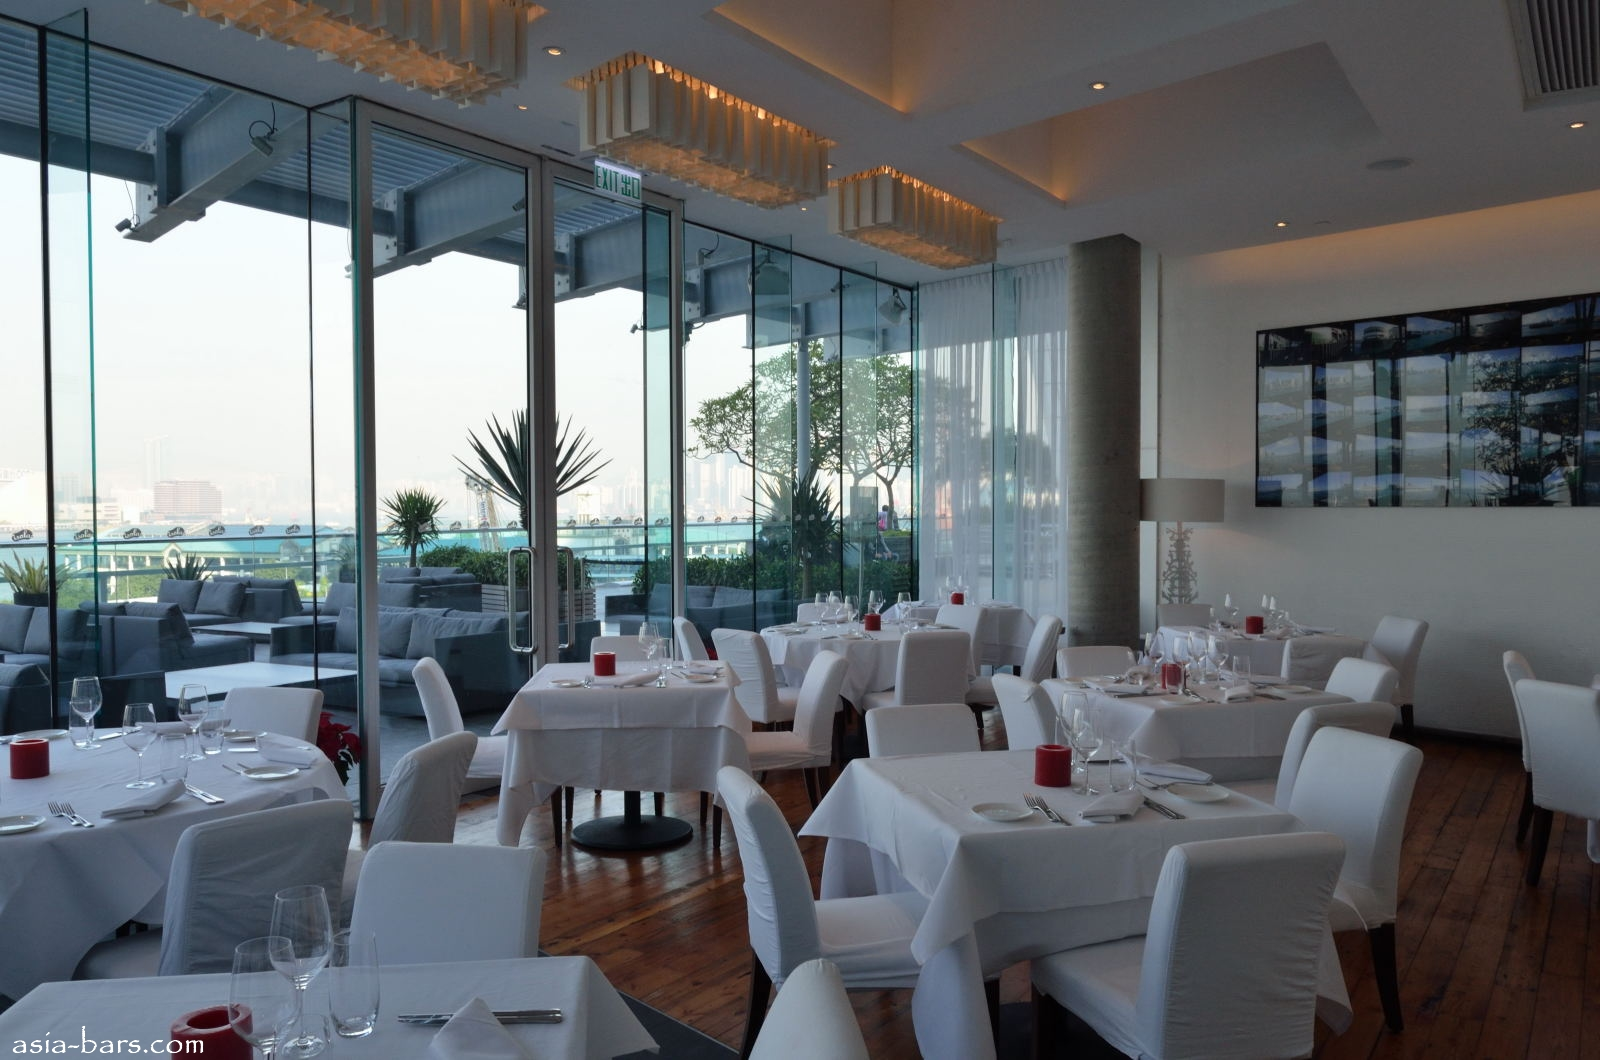 Restaurant With Private Room Hk